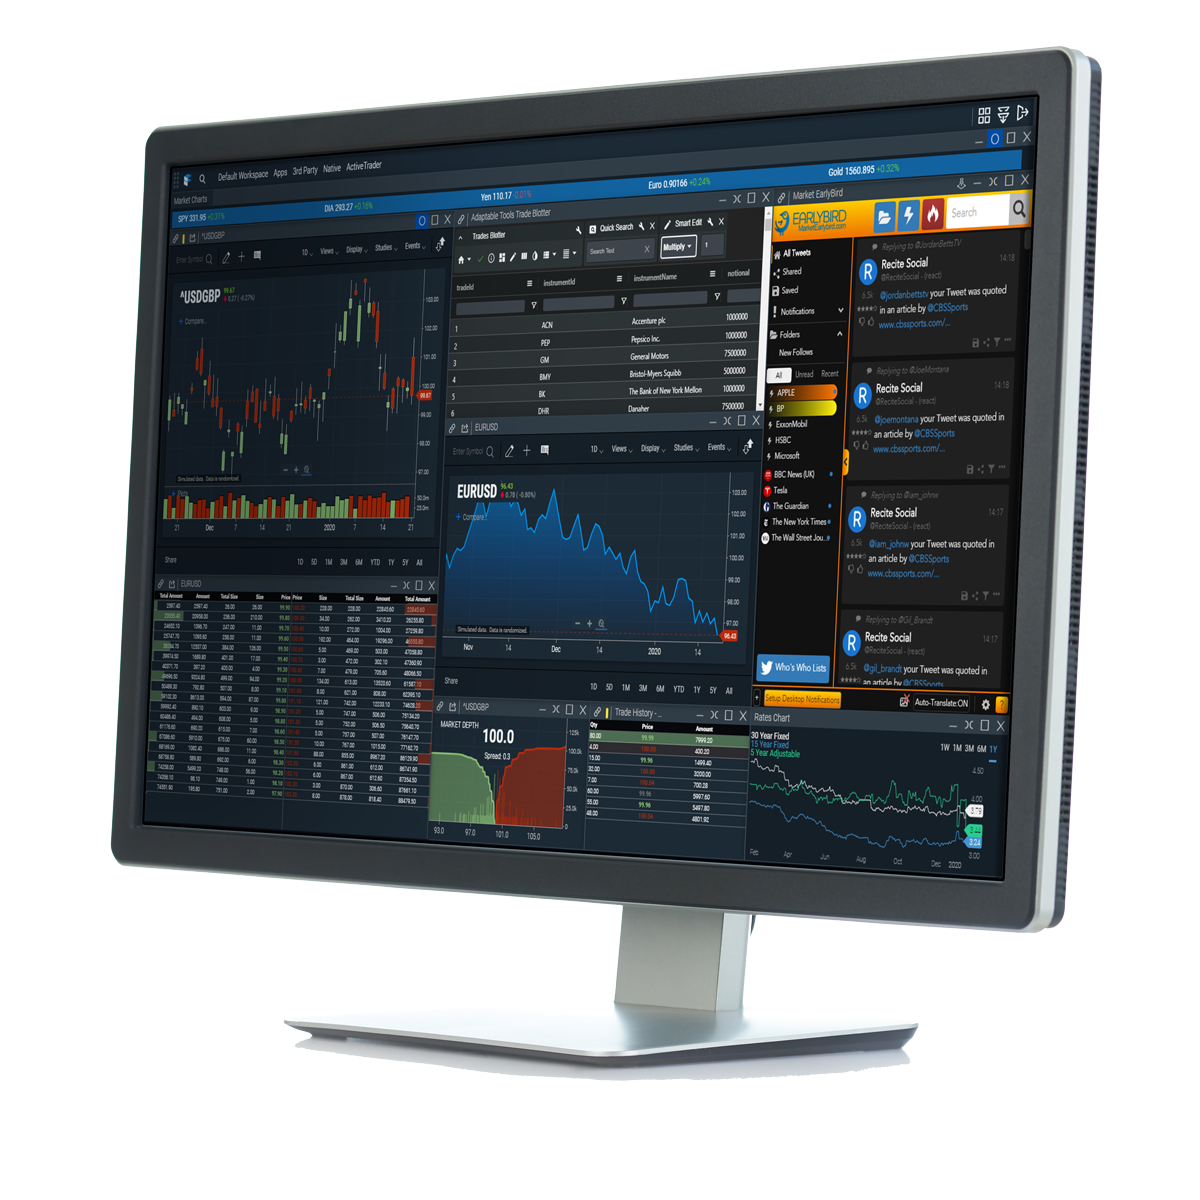 Ecosystem of applications on computer monitor